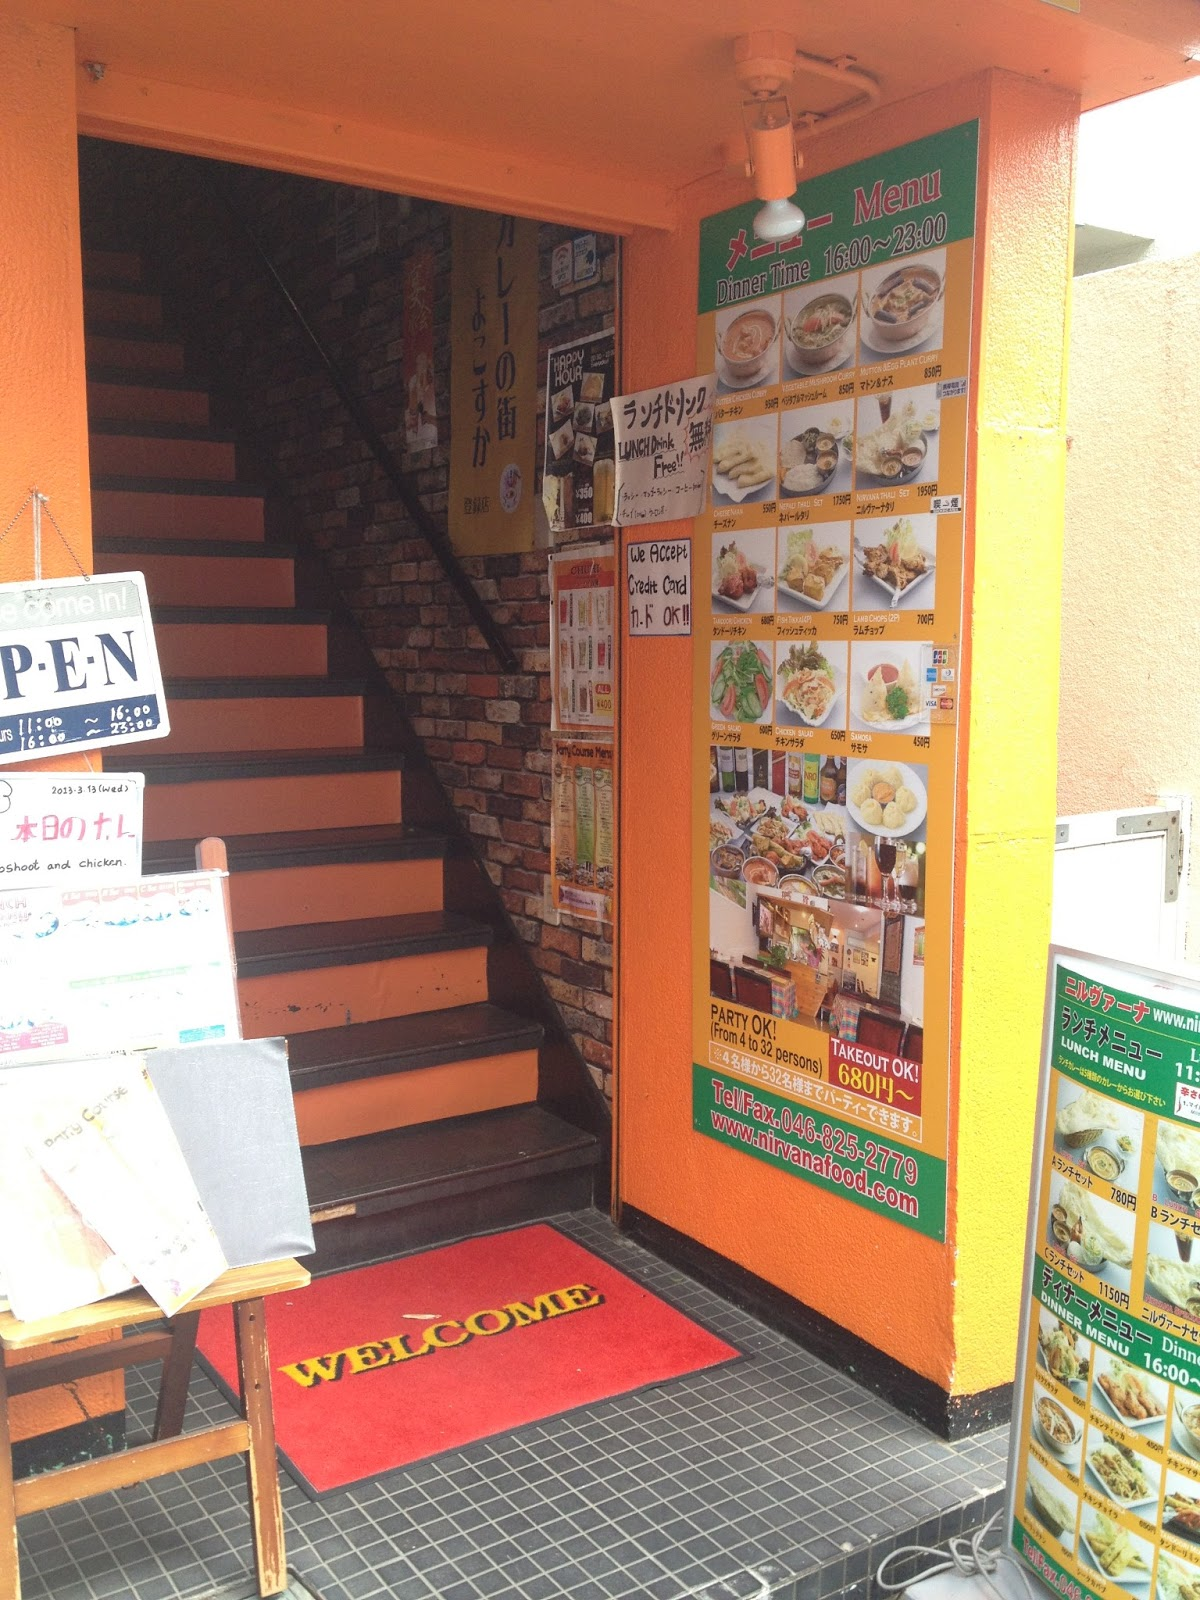 one is located basement level below mikasa plaza and the other is located closer to yokosuka chuo the one by yokosuka chuo is on the second floor